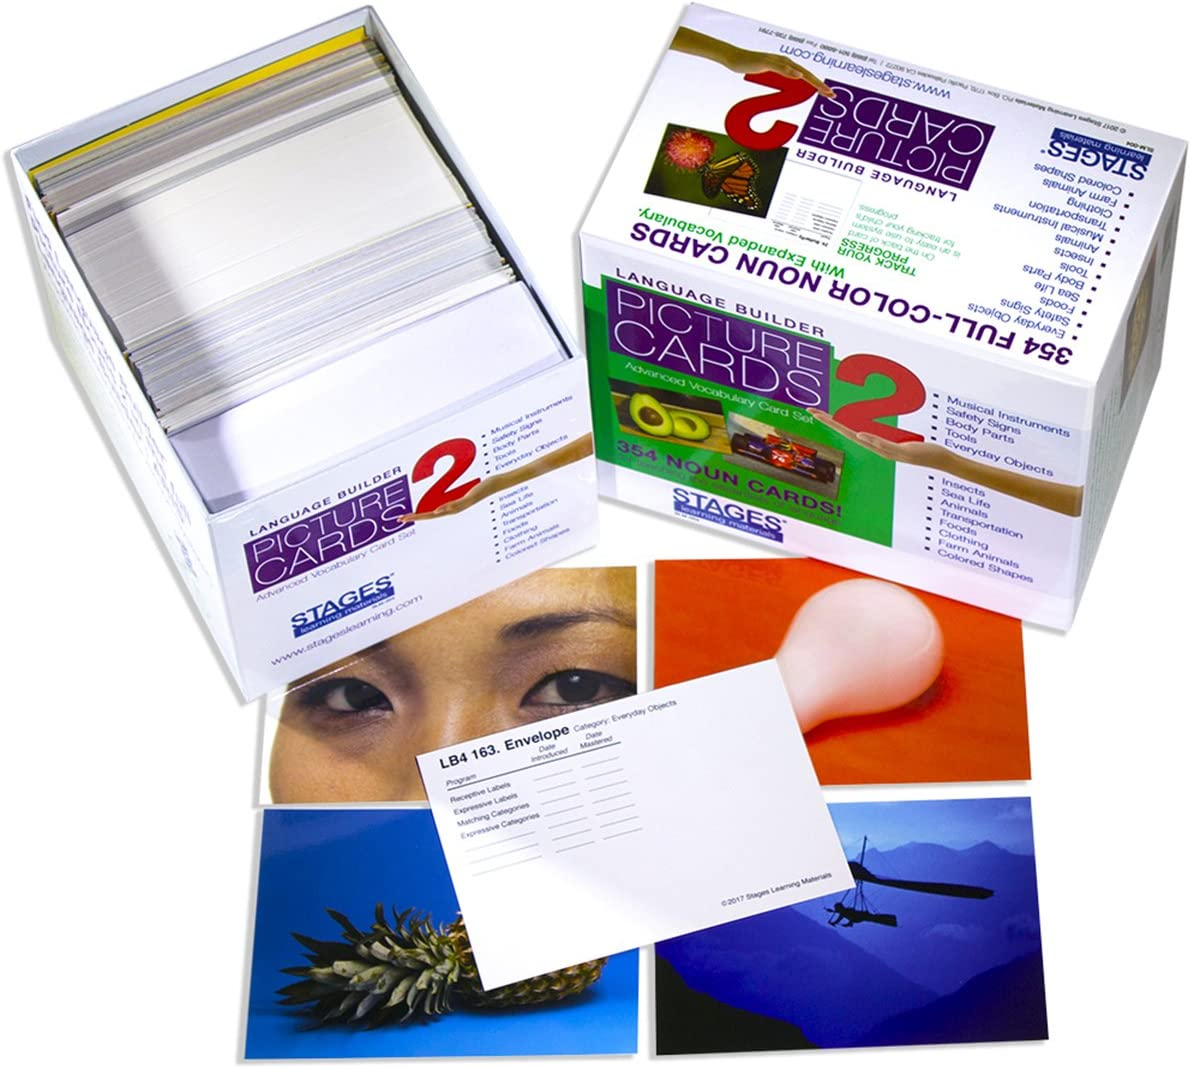 Stages Learning Materials Language Builder Picture Noun Cards